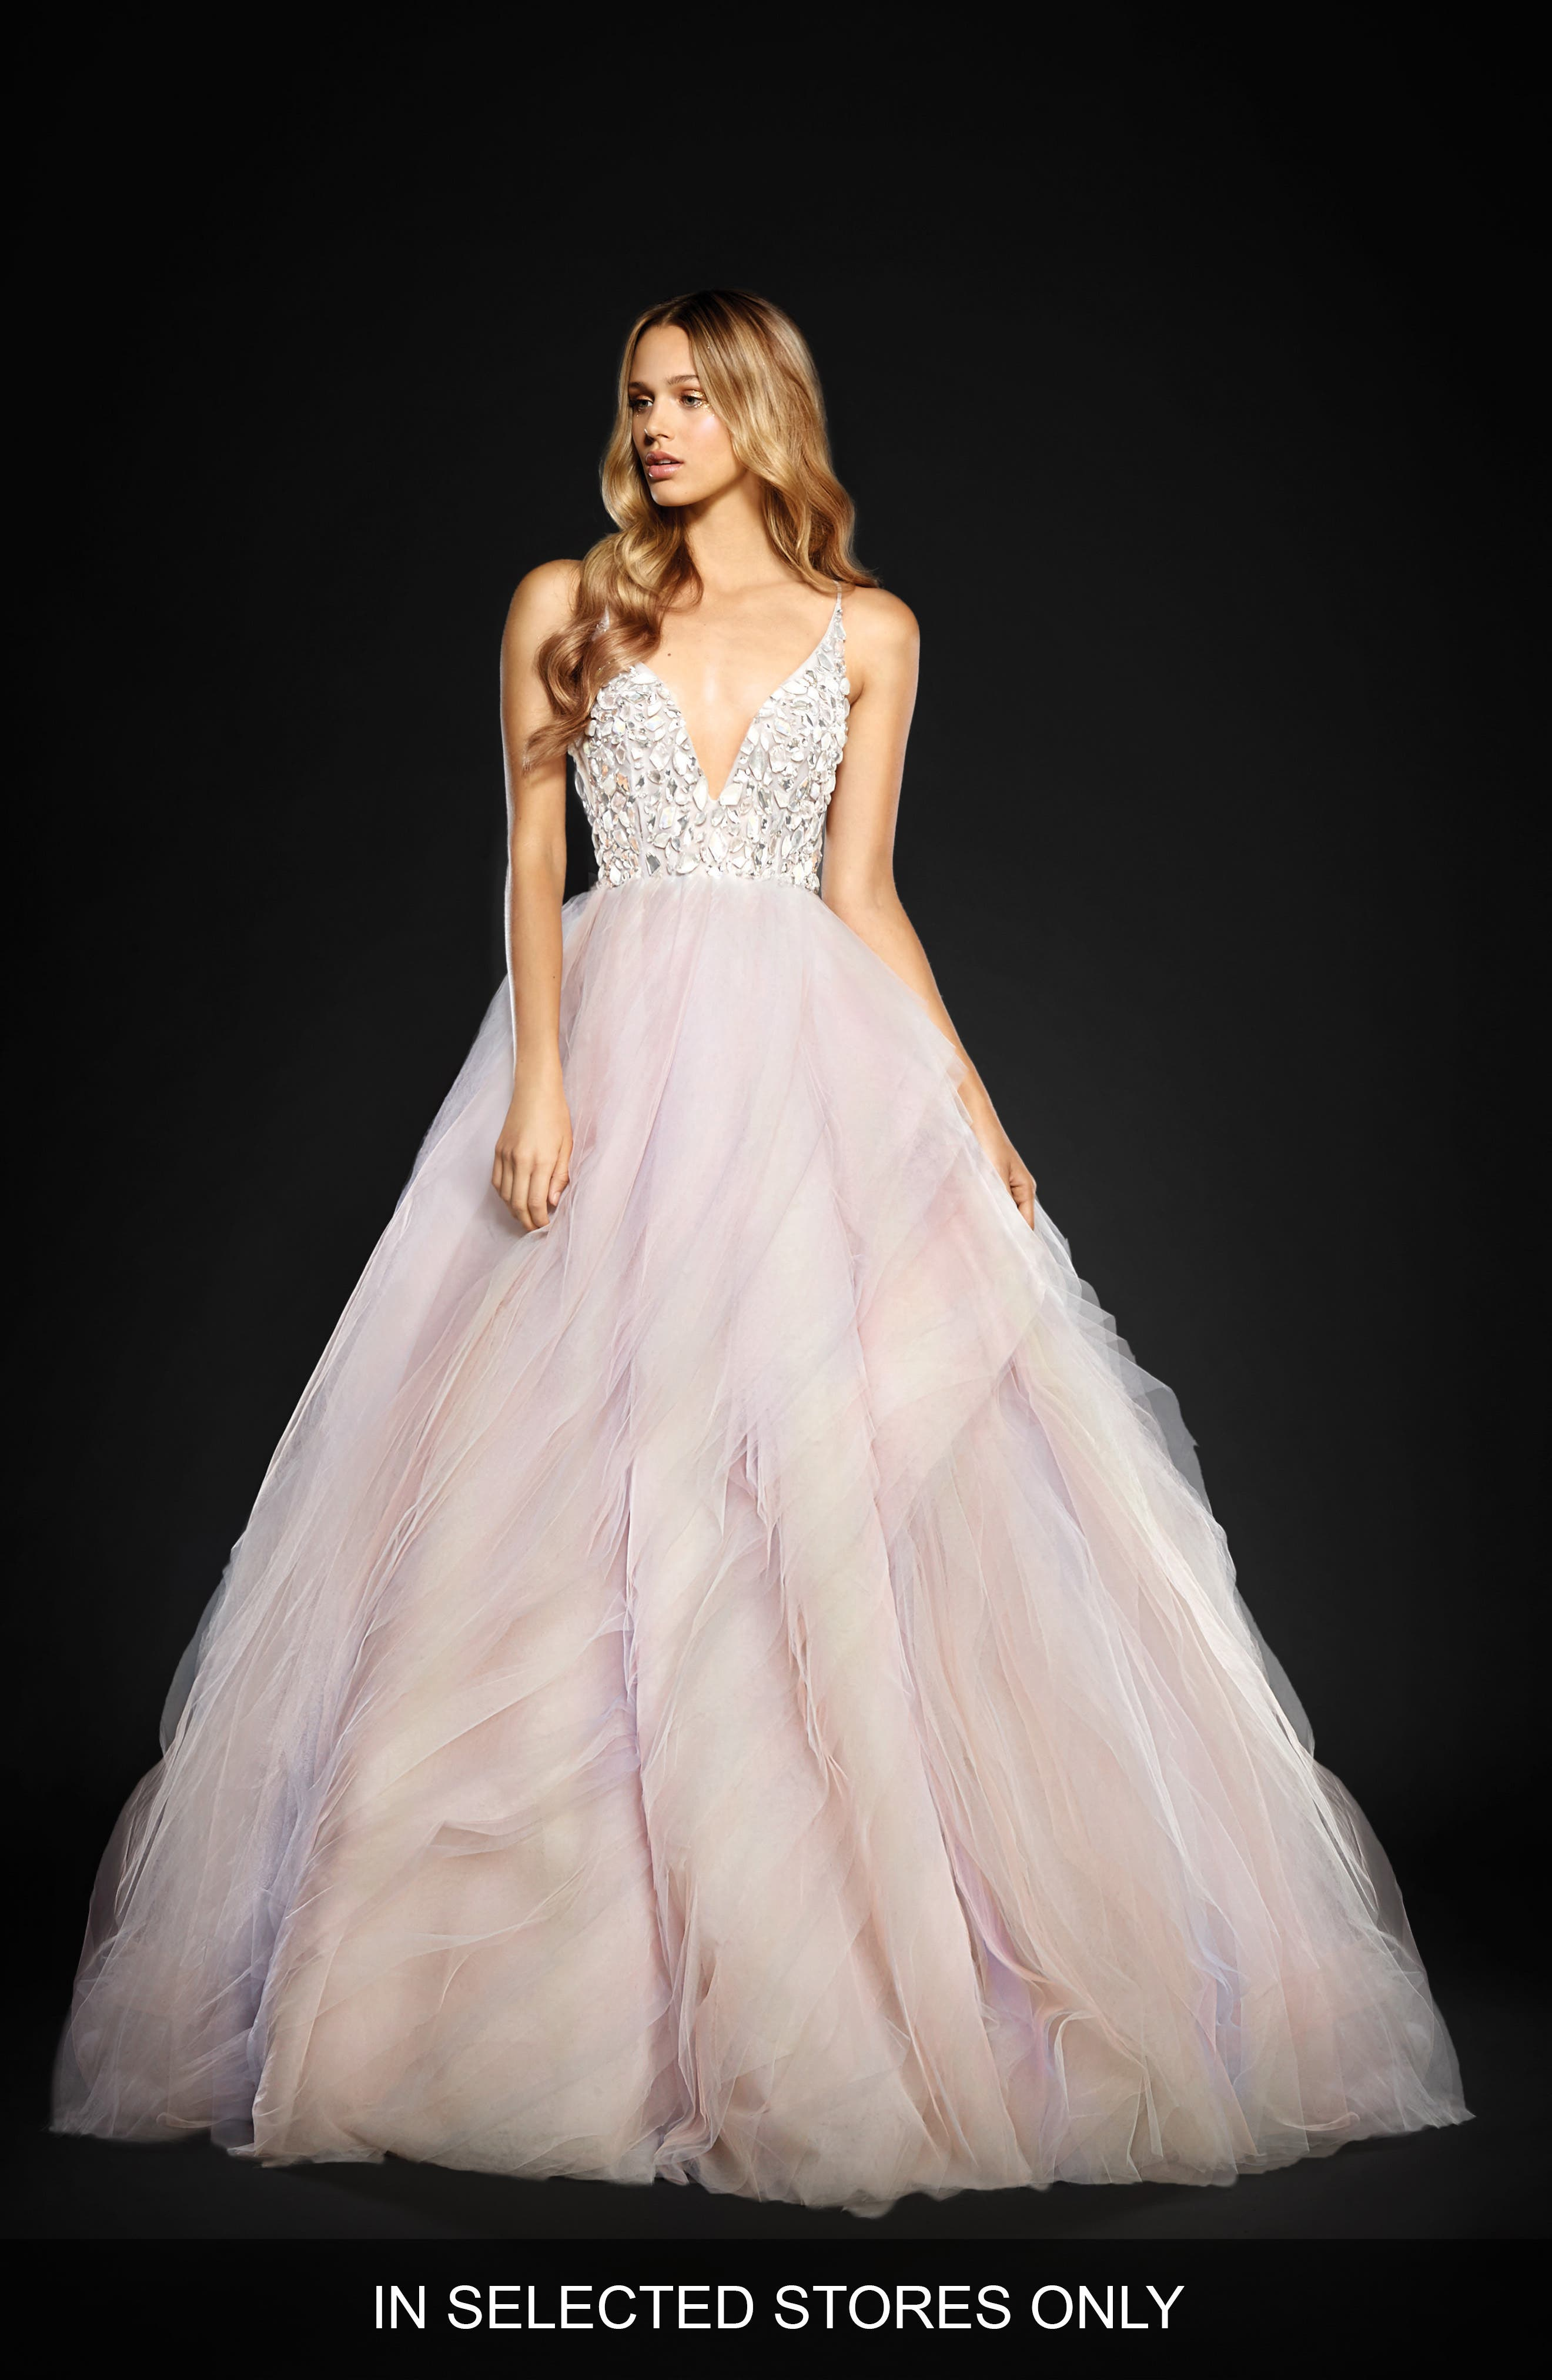 Jem Rock Candy Embellished Tulle Ballgown,                             Alternate thumbnail 4, color,                             900